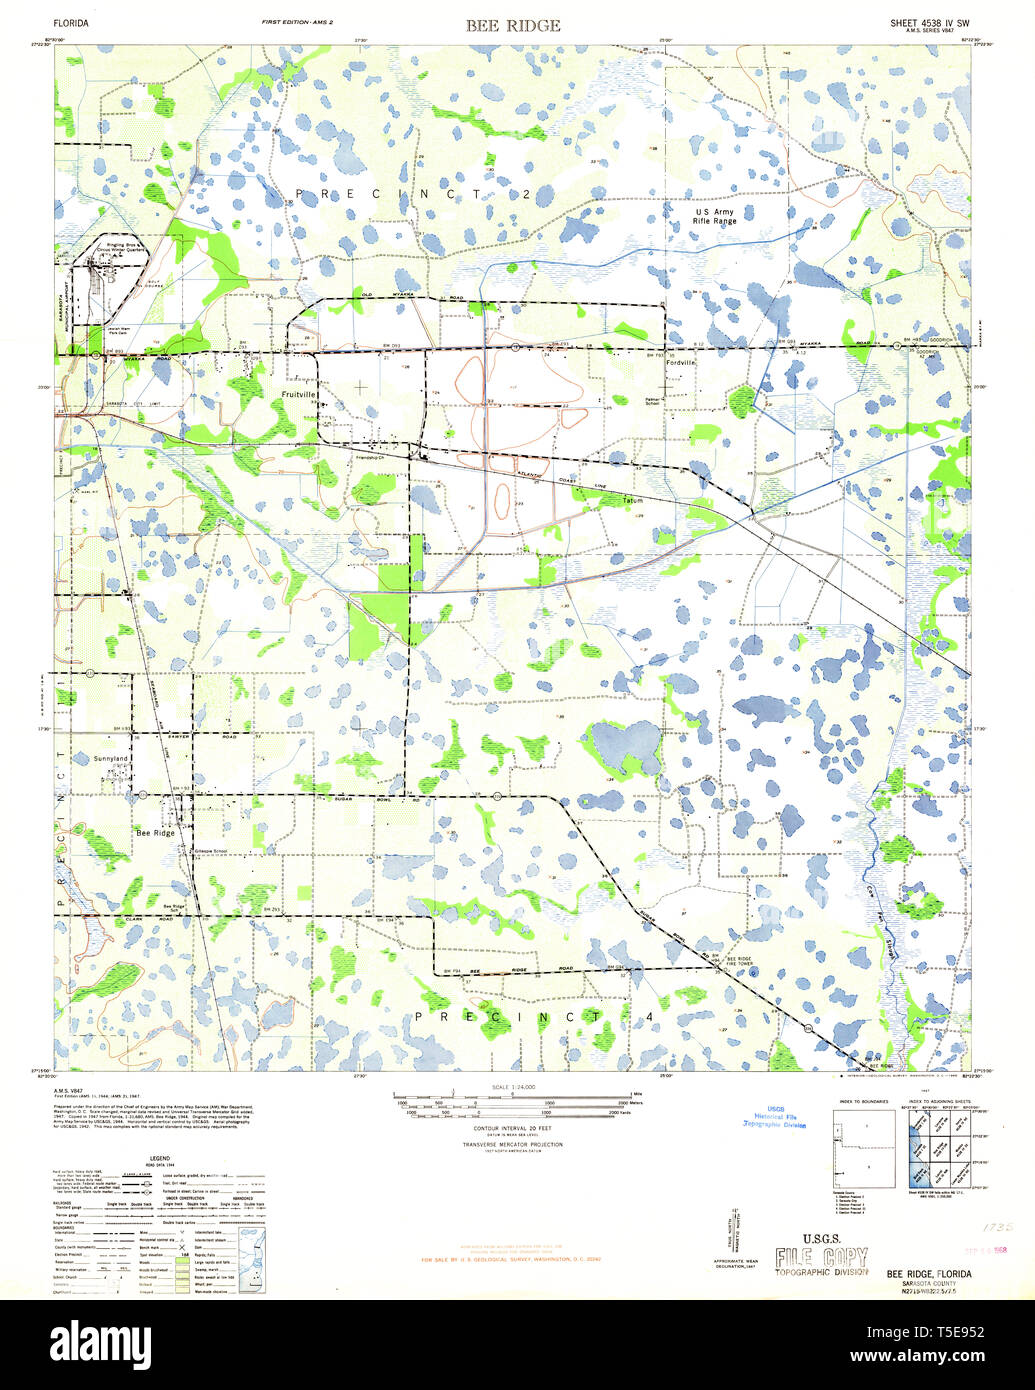 USGS TOPO Map Florida FL Bee Ridge 345134 1947 24000 ... Usgs Bee Map on dcnr maps, topographic maps, digitalglobe maps, dnr maps, google maps, science maps, esri maps, delorme maps, geological survey maps, microsoft maps, geology maps, twra maps, ascs maps, noaa maps, bucks county pa township maps, cornell university maps, cia maps, osm maps, unosat maps, usc maps,